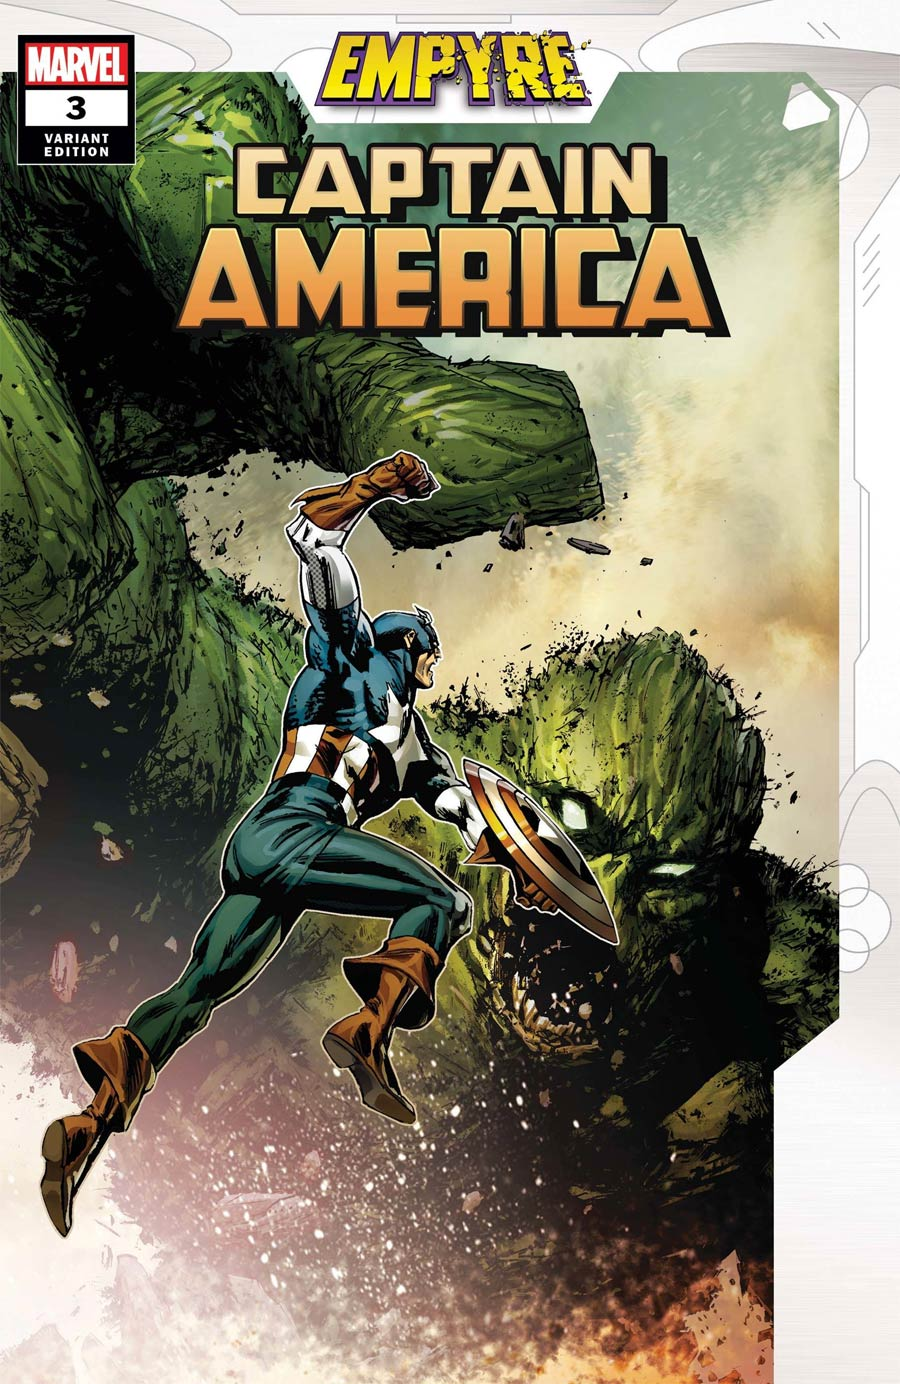 Empyre Captain America #3 Cover B Variant Butch Guice Cover